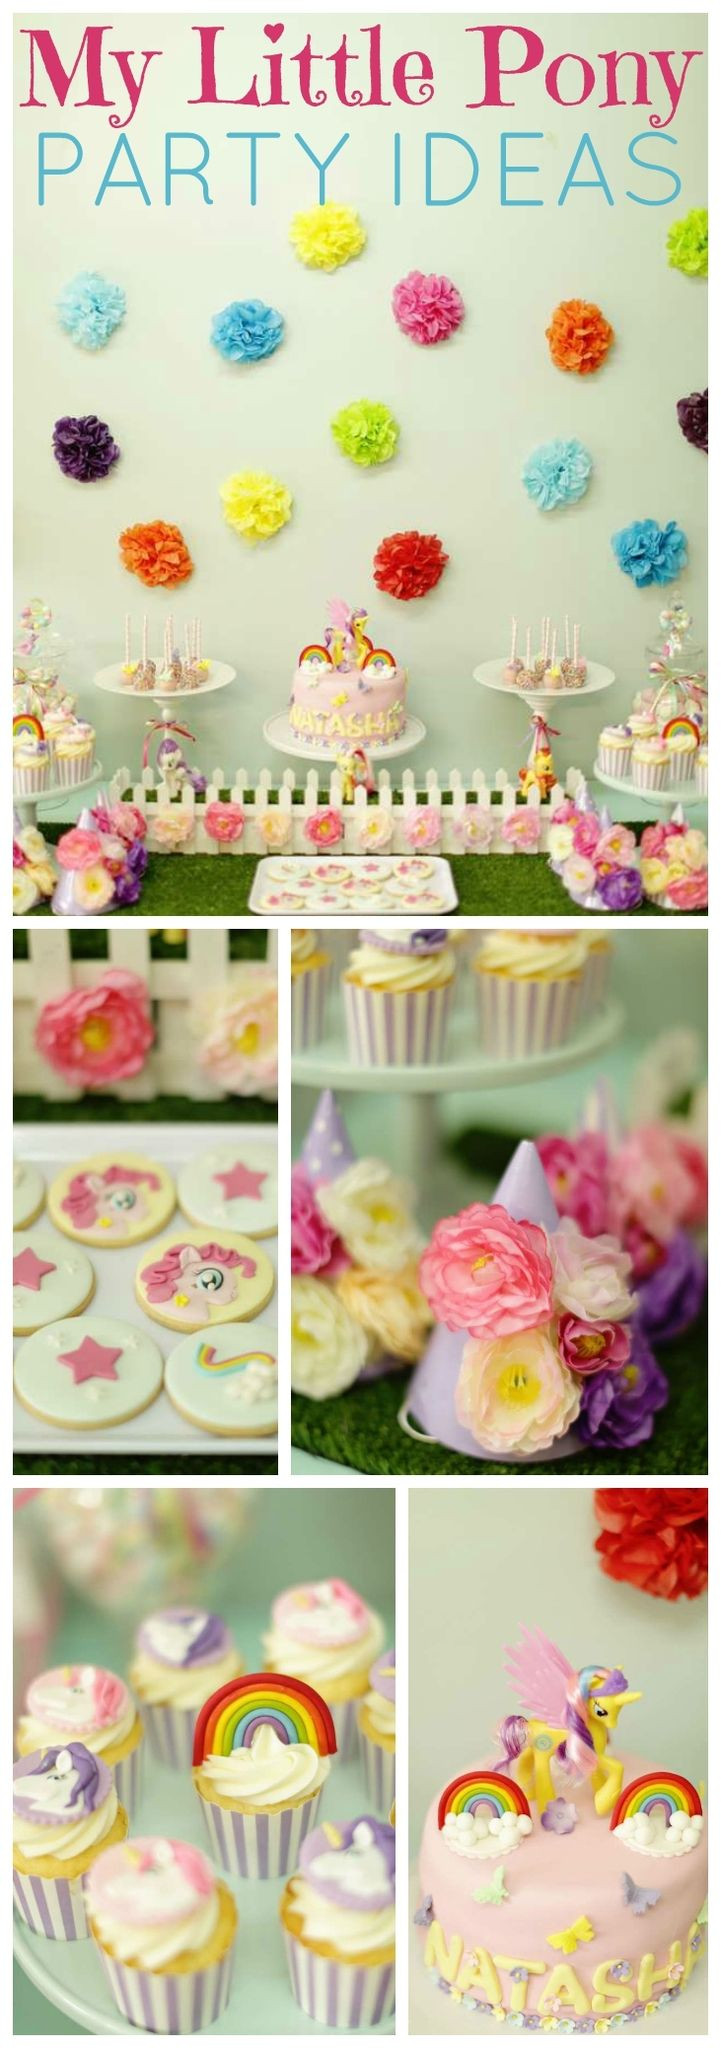 Best ideas about Ponies Birthday Party . Save or Pin 233 best My Little Pony Party Ideas images on Pinterest Now.